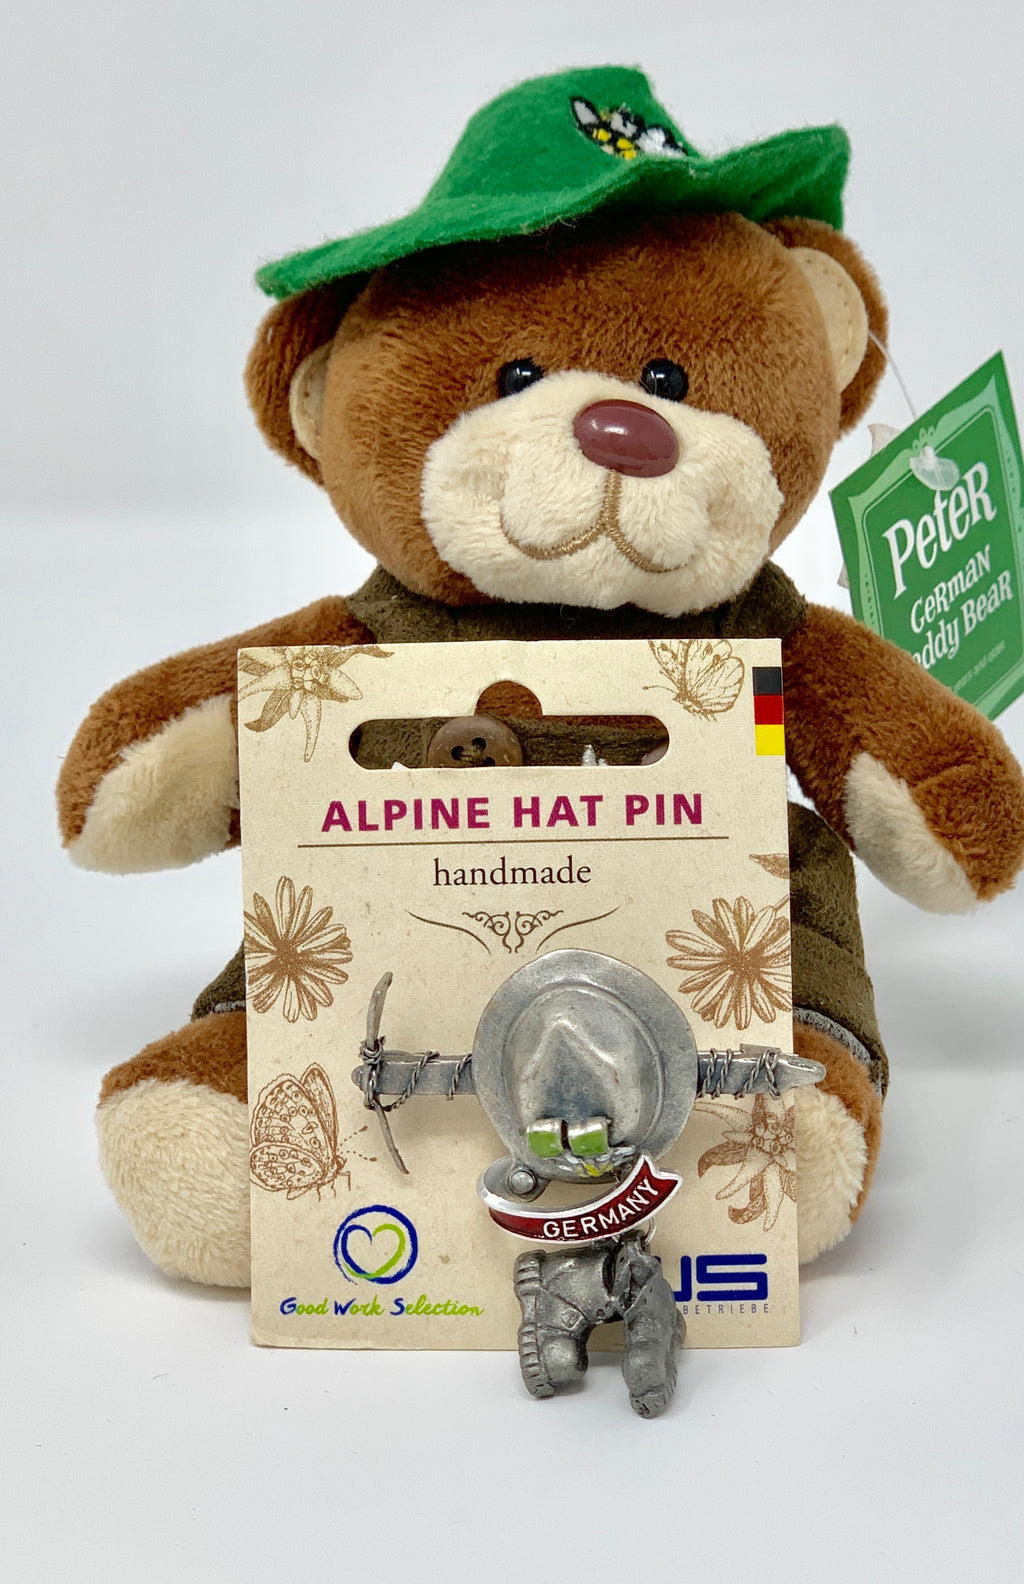 Alpine Hat Pin • Pick Ax  • Handmade